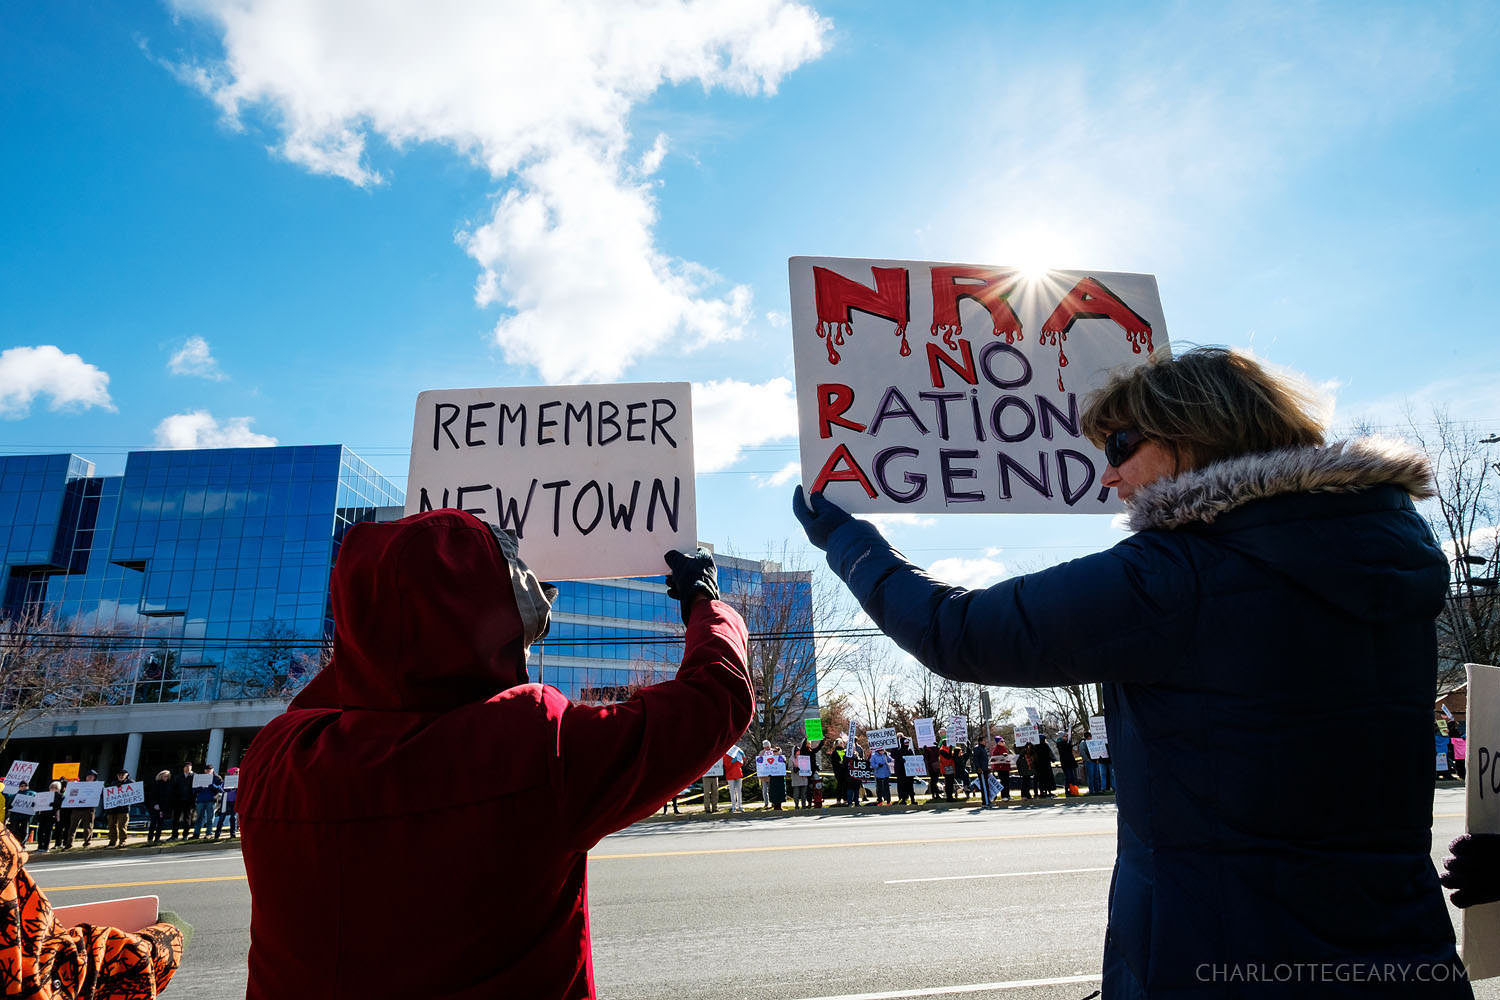 Protest at the NRA Headquarters after the Parkland school shooting (Fairfax, Virginia)